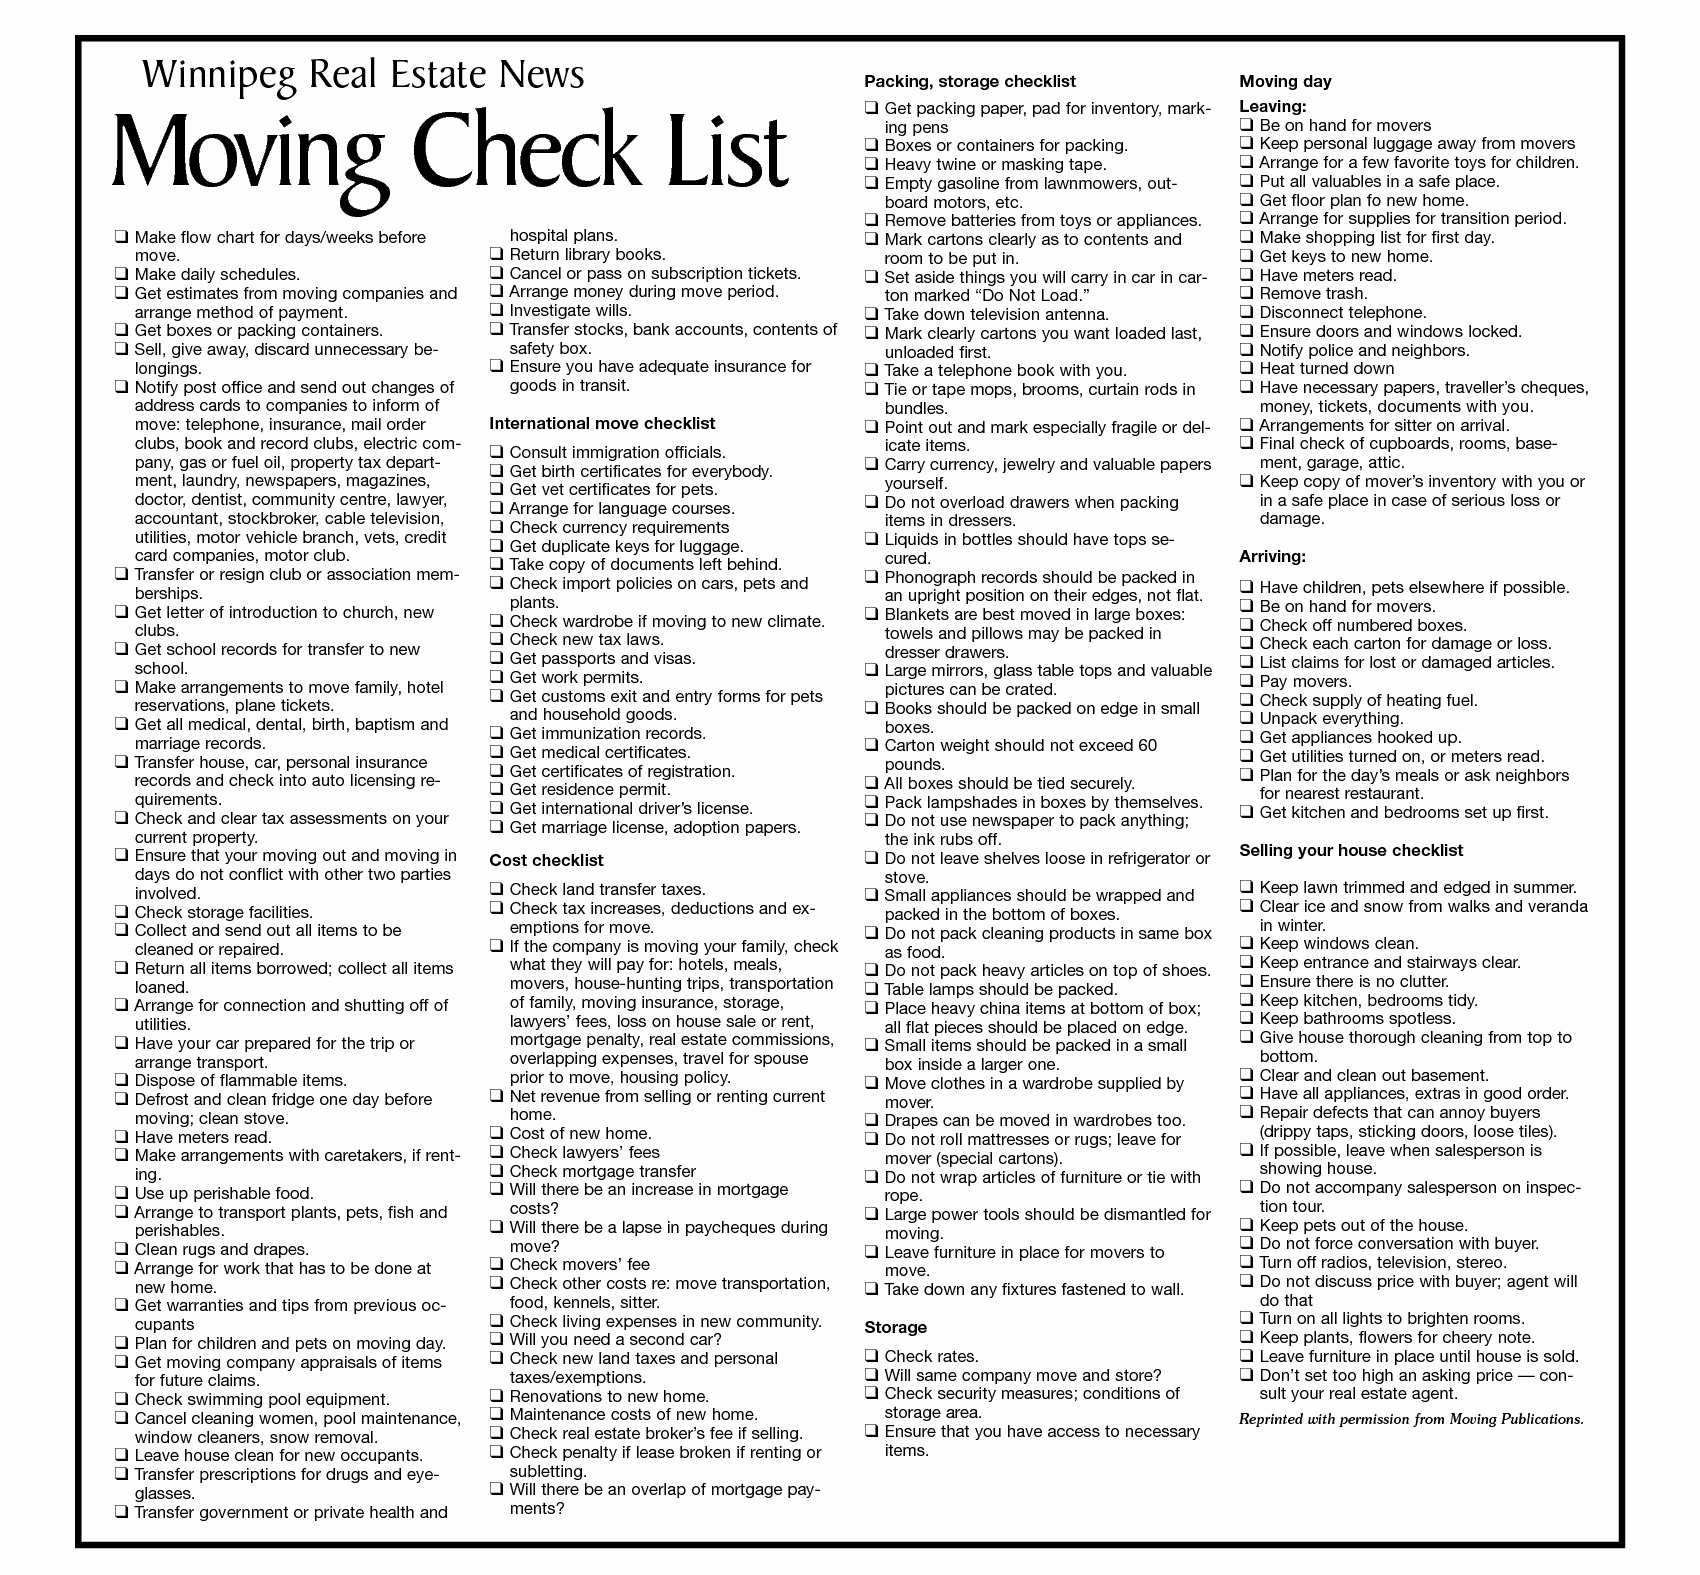 Move In Checklist Template Awesome Moving Checklist Template Moving Pinterest